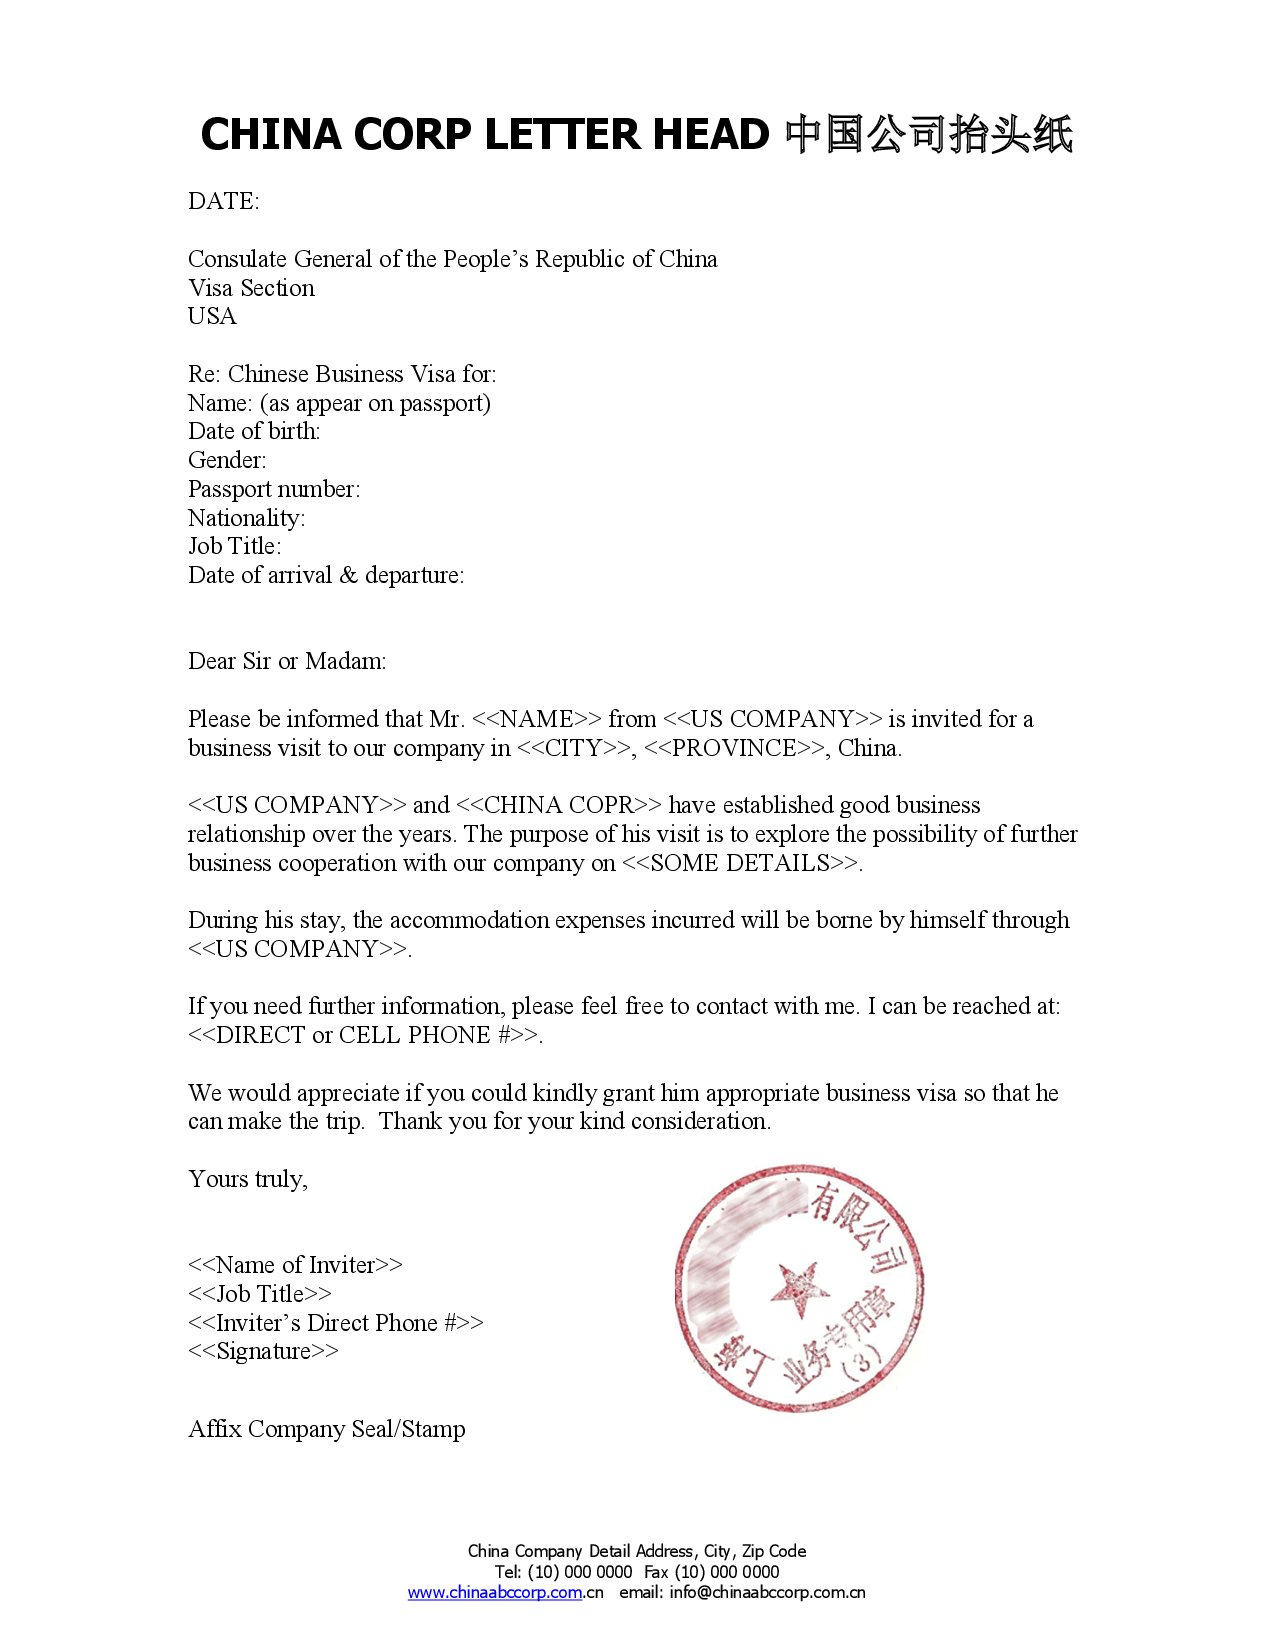 Format invitation letter for business visa to china lettervisa format invitation letter for business visa to china lettervisa invitation letter application letter sample altavistaventures